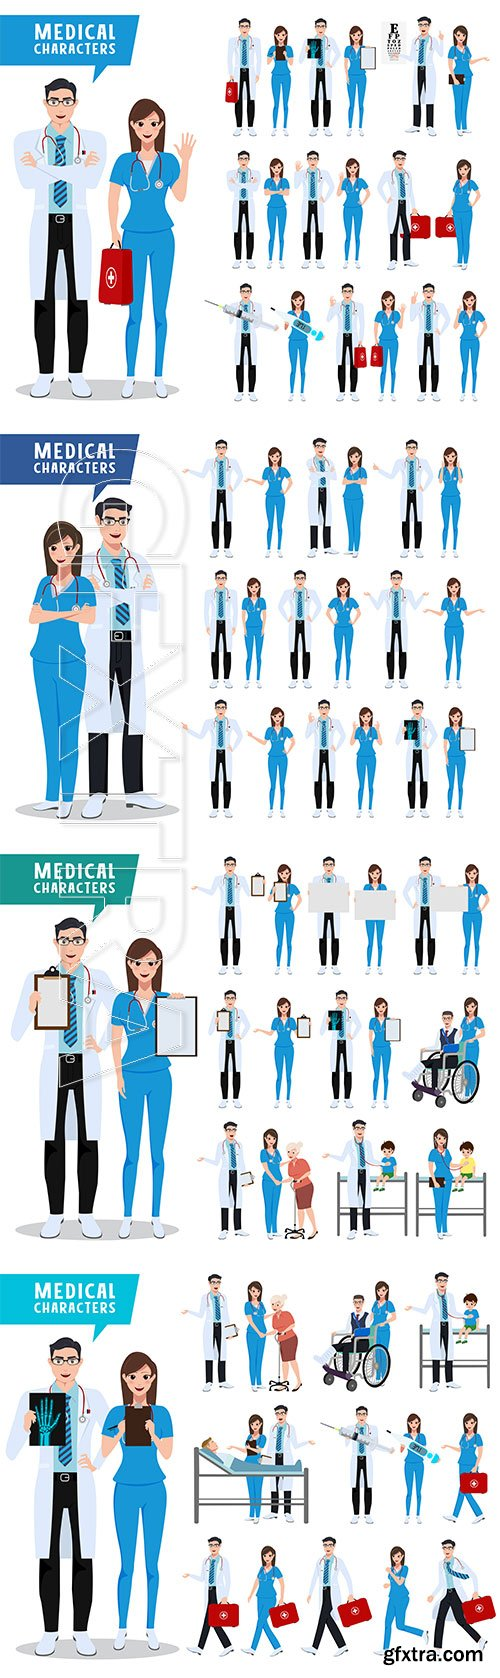 Medical characters vector illustration